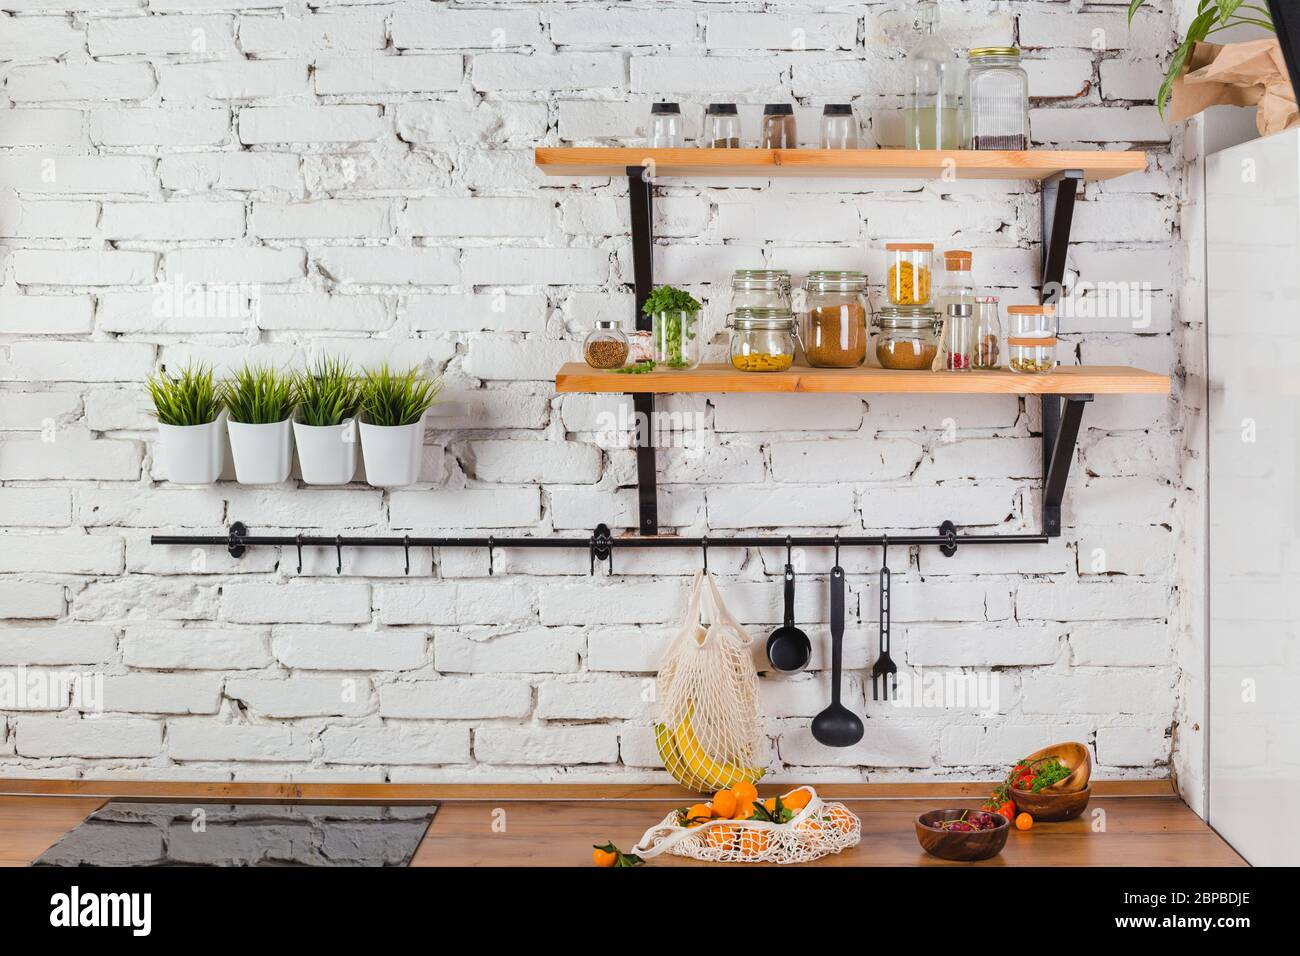 Interior Of Modern Kitchen White Brick Wall Zero Waste Concept Glass Jars Mesh Reuse Bag Stock Photo Alamy